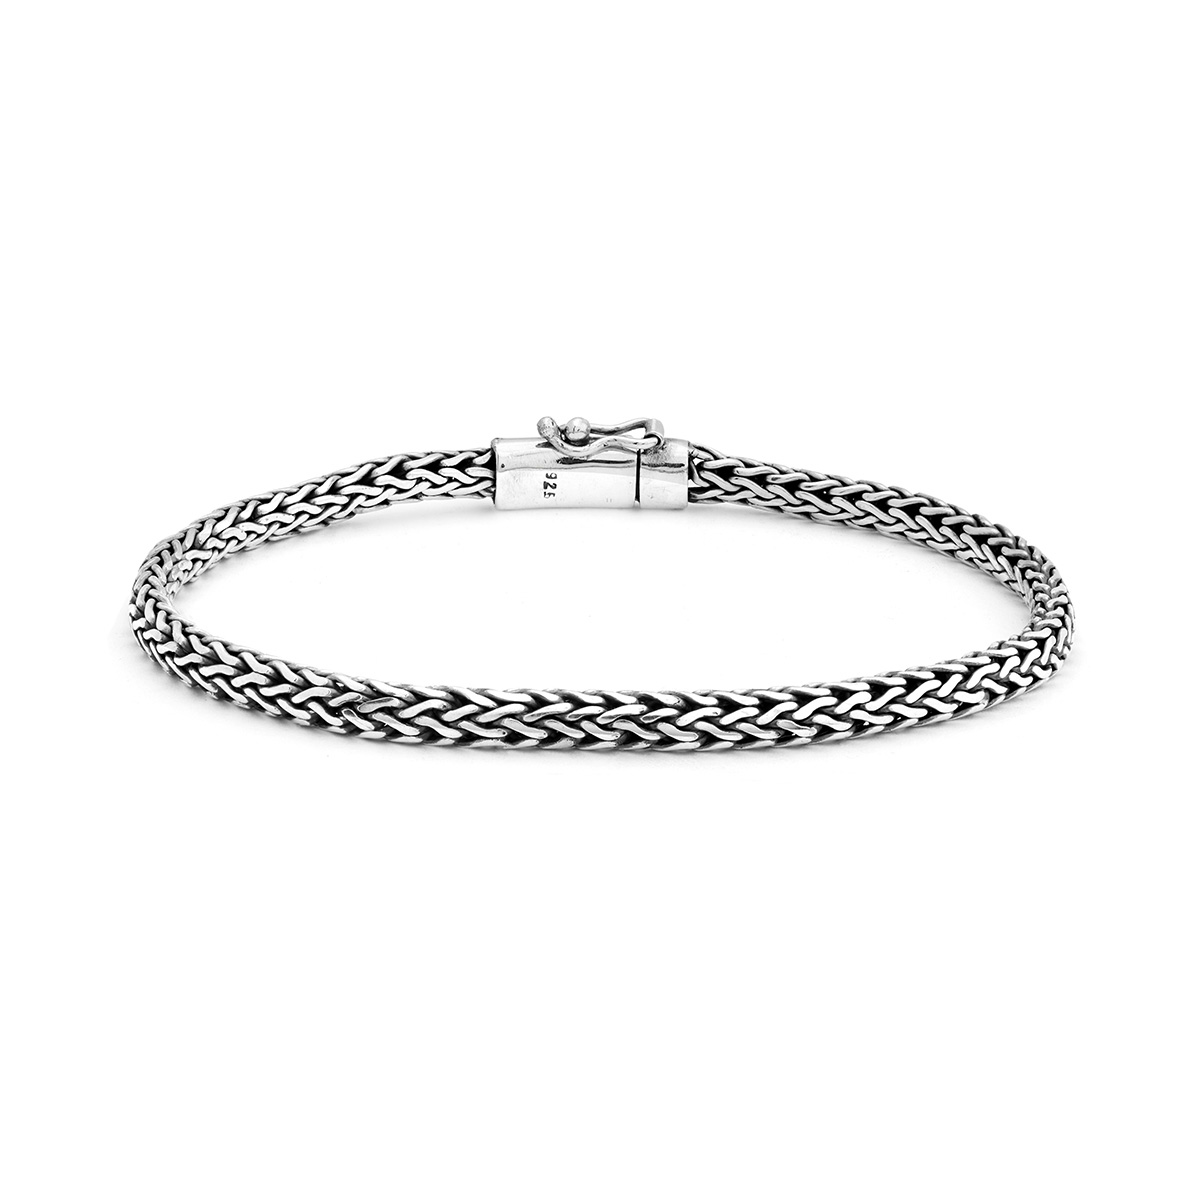 Bratan Silver Bracelet - Handcrafted Sterling Silver Jewellery from Bali by Nusa